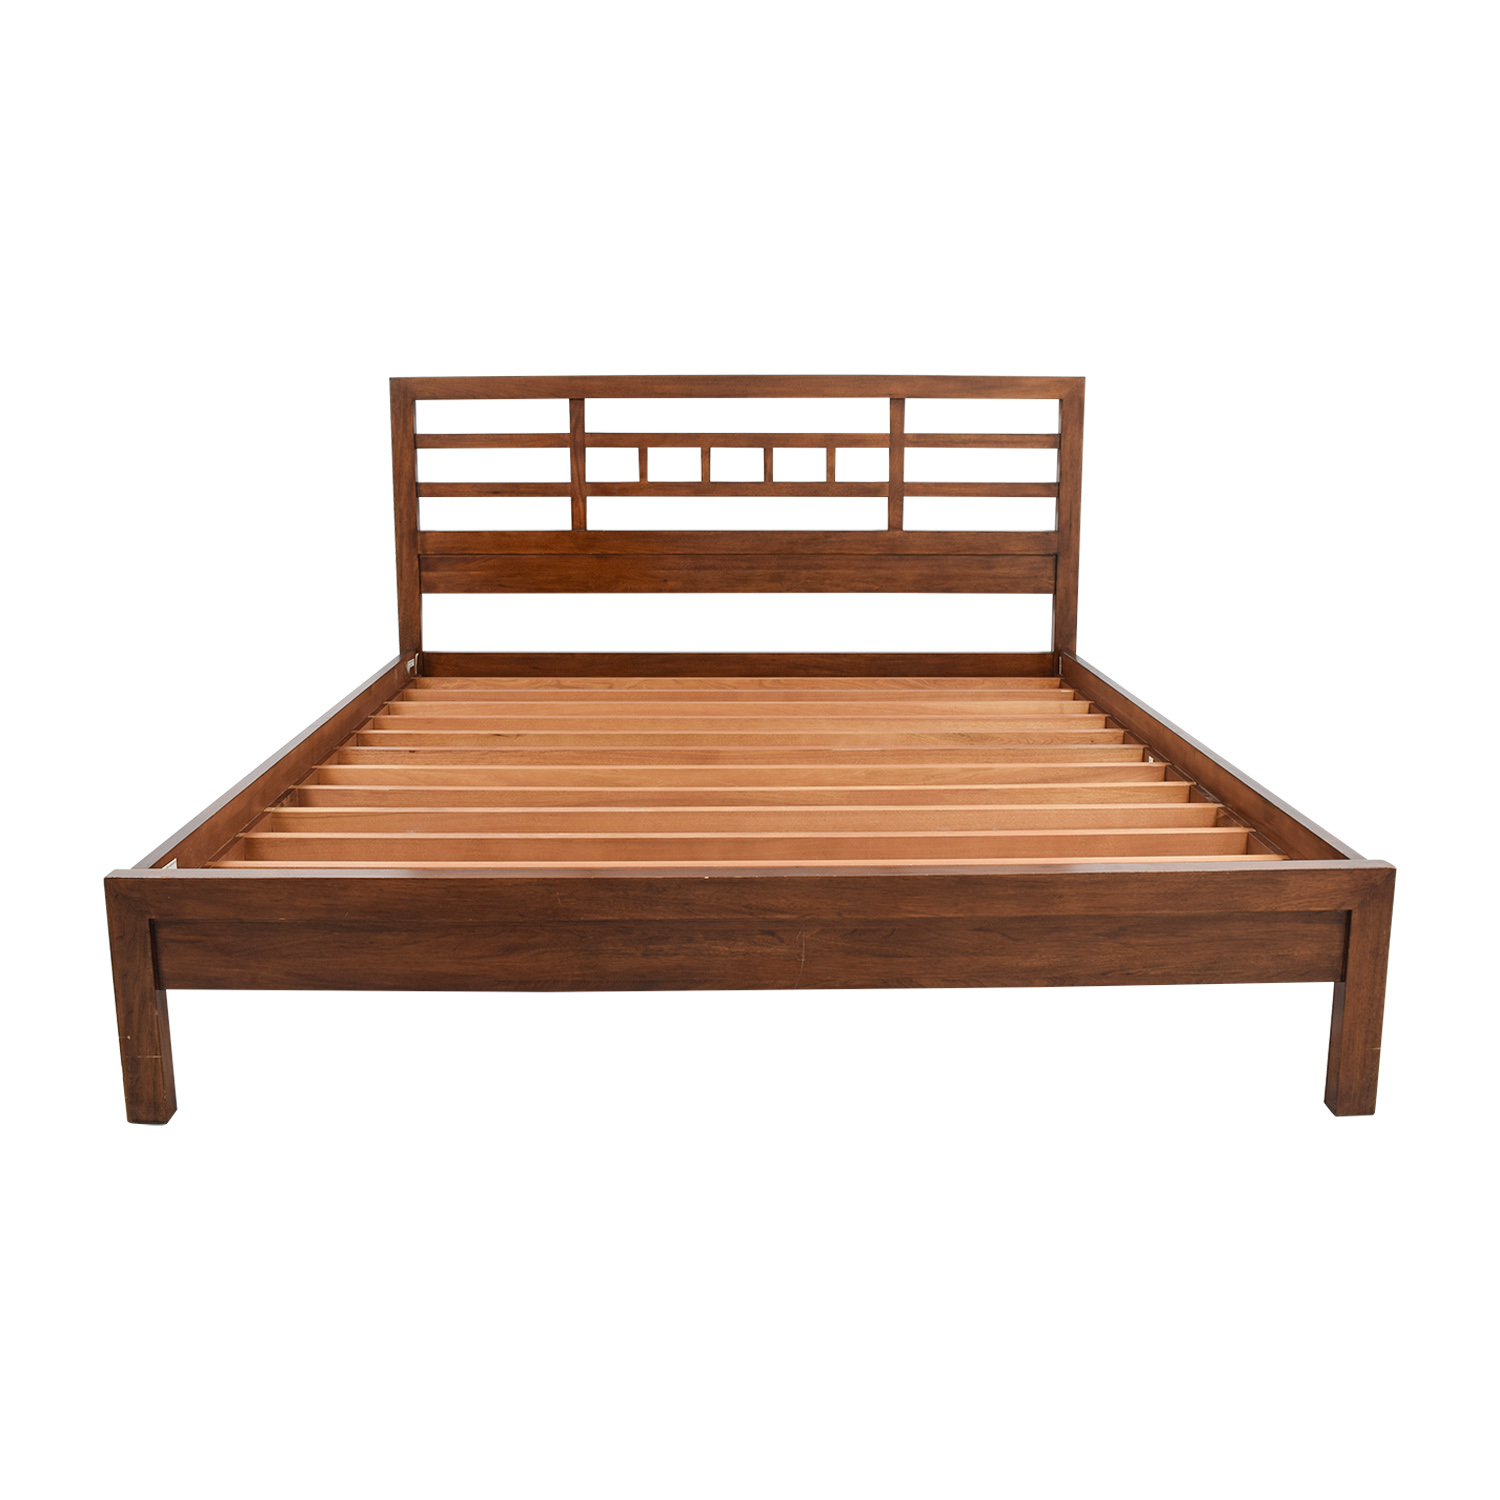 Room & Board Room & Board King Platform Bed Frame on sale